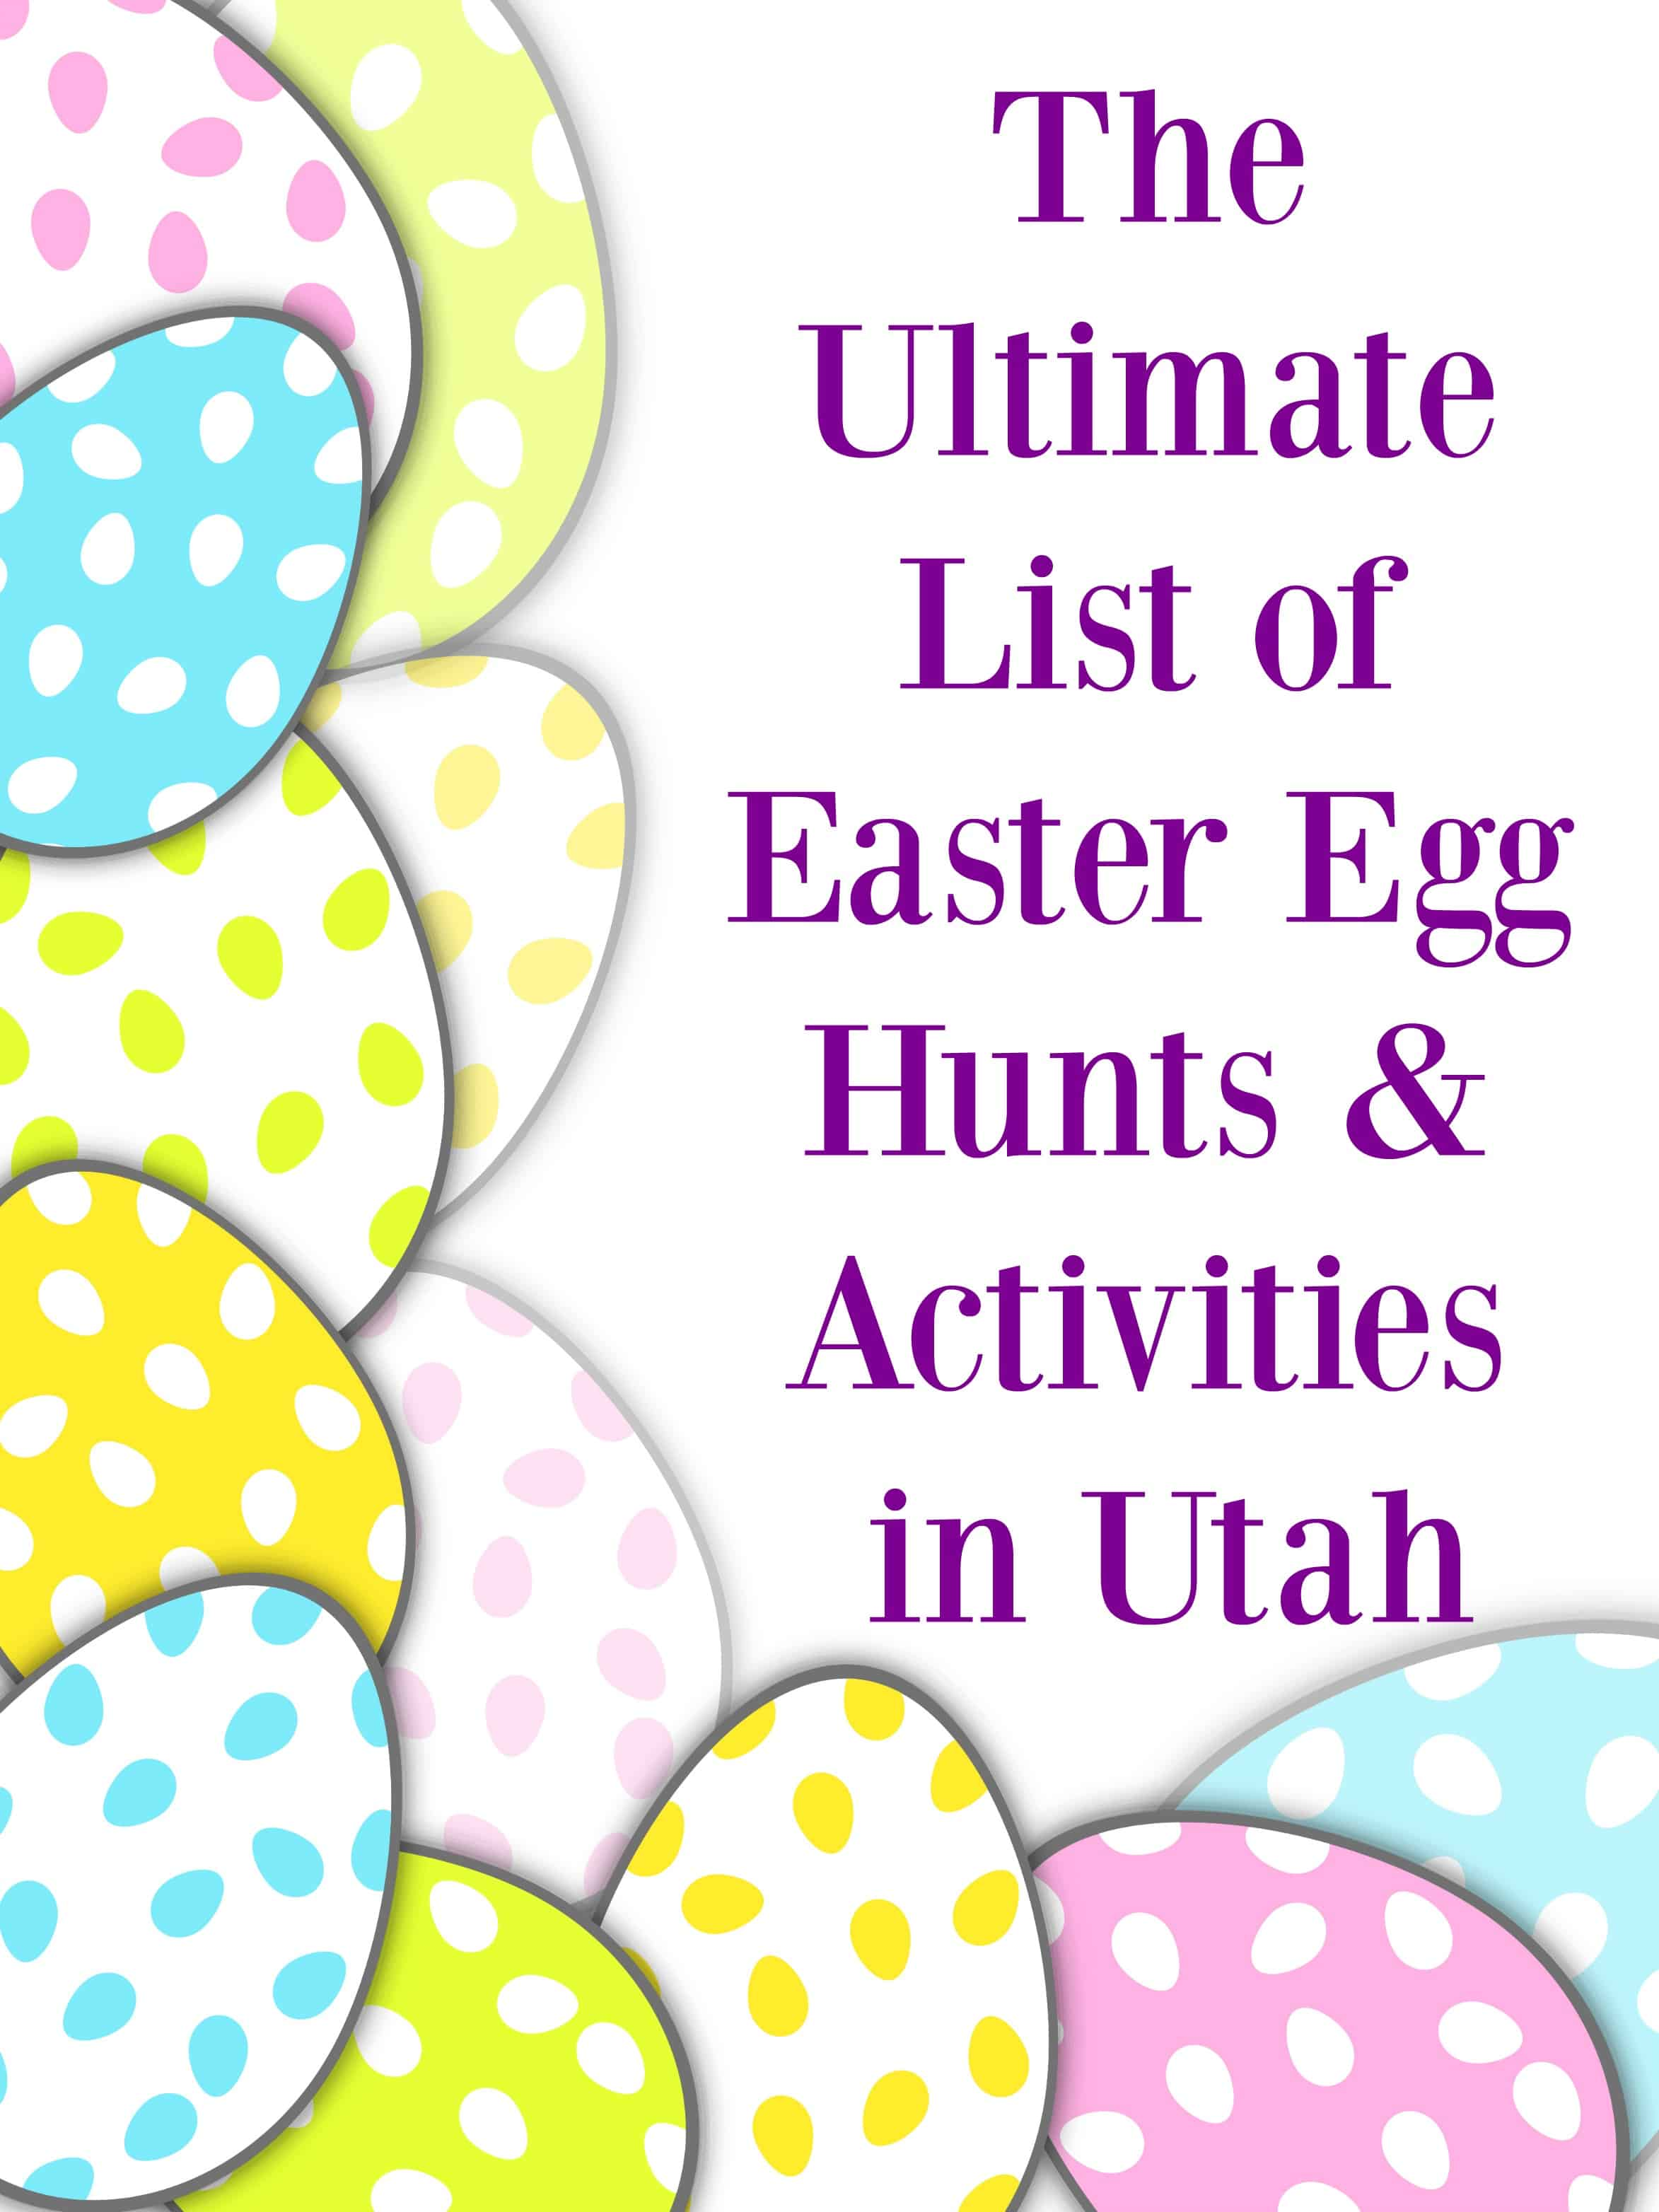 the ultimate list of easter egg hunts and activities in utah 2016